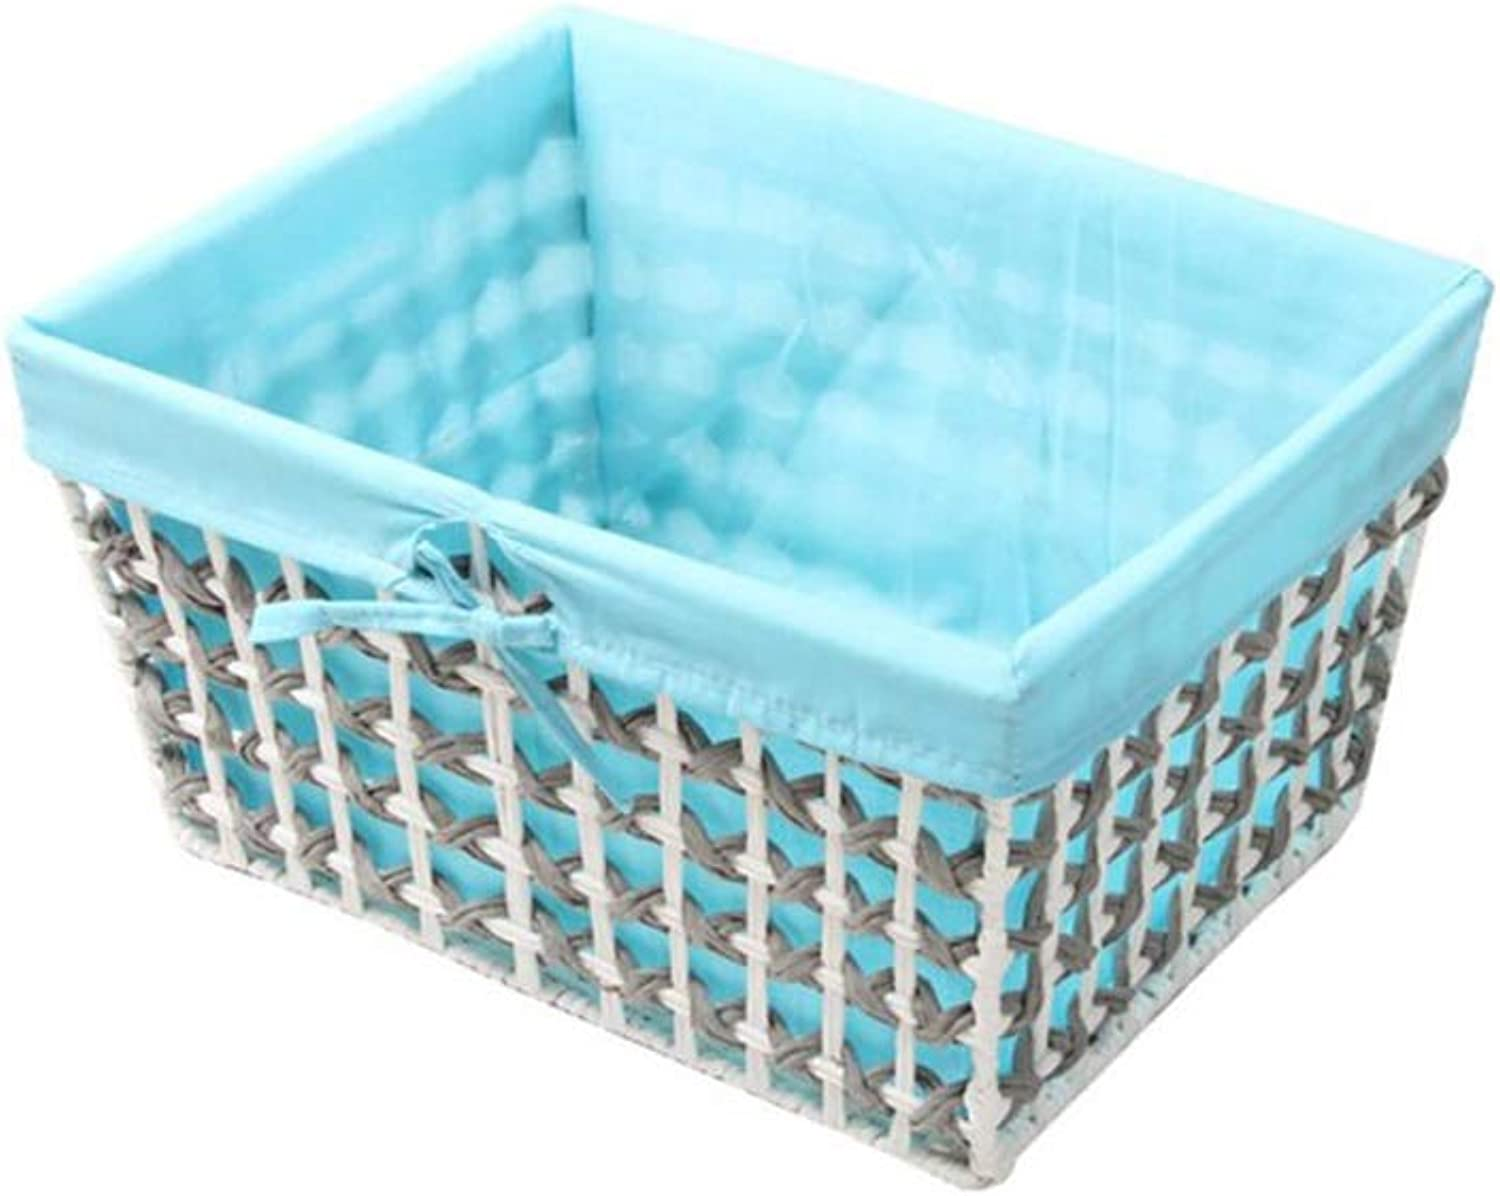 MUMA Storage Basket Rattan Weaving Lining Detachable Easy to Clean Durable Simple Home Supplies (color   bluee, Size   40  31  21cm)